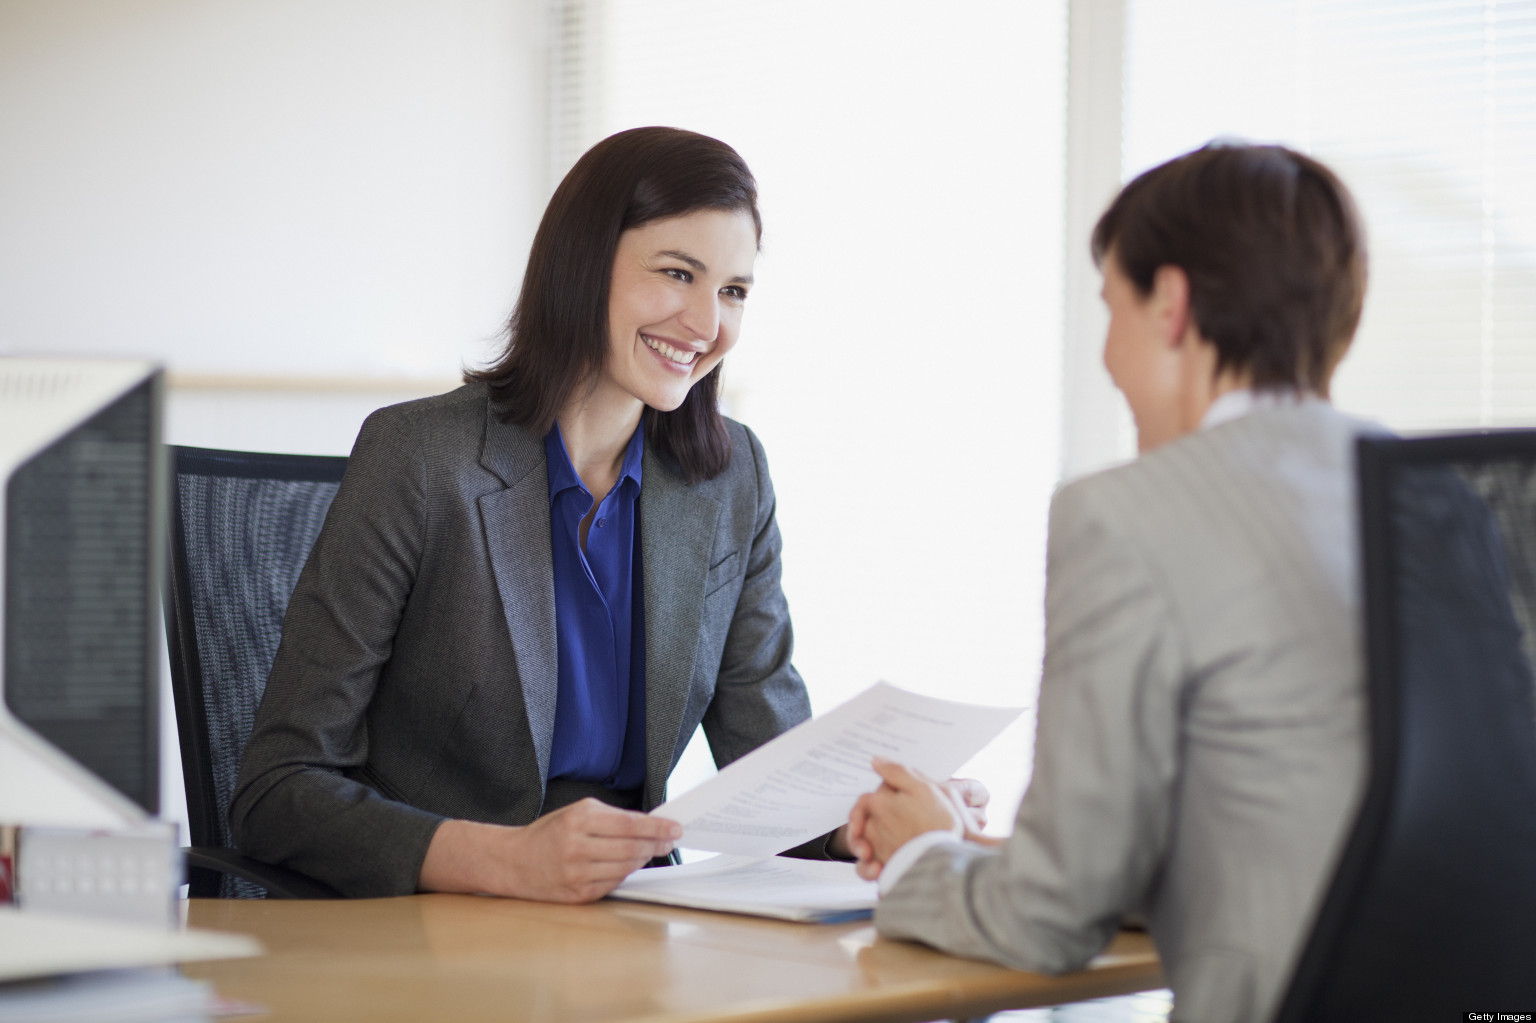 How to follow up after an interview